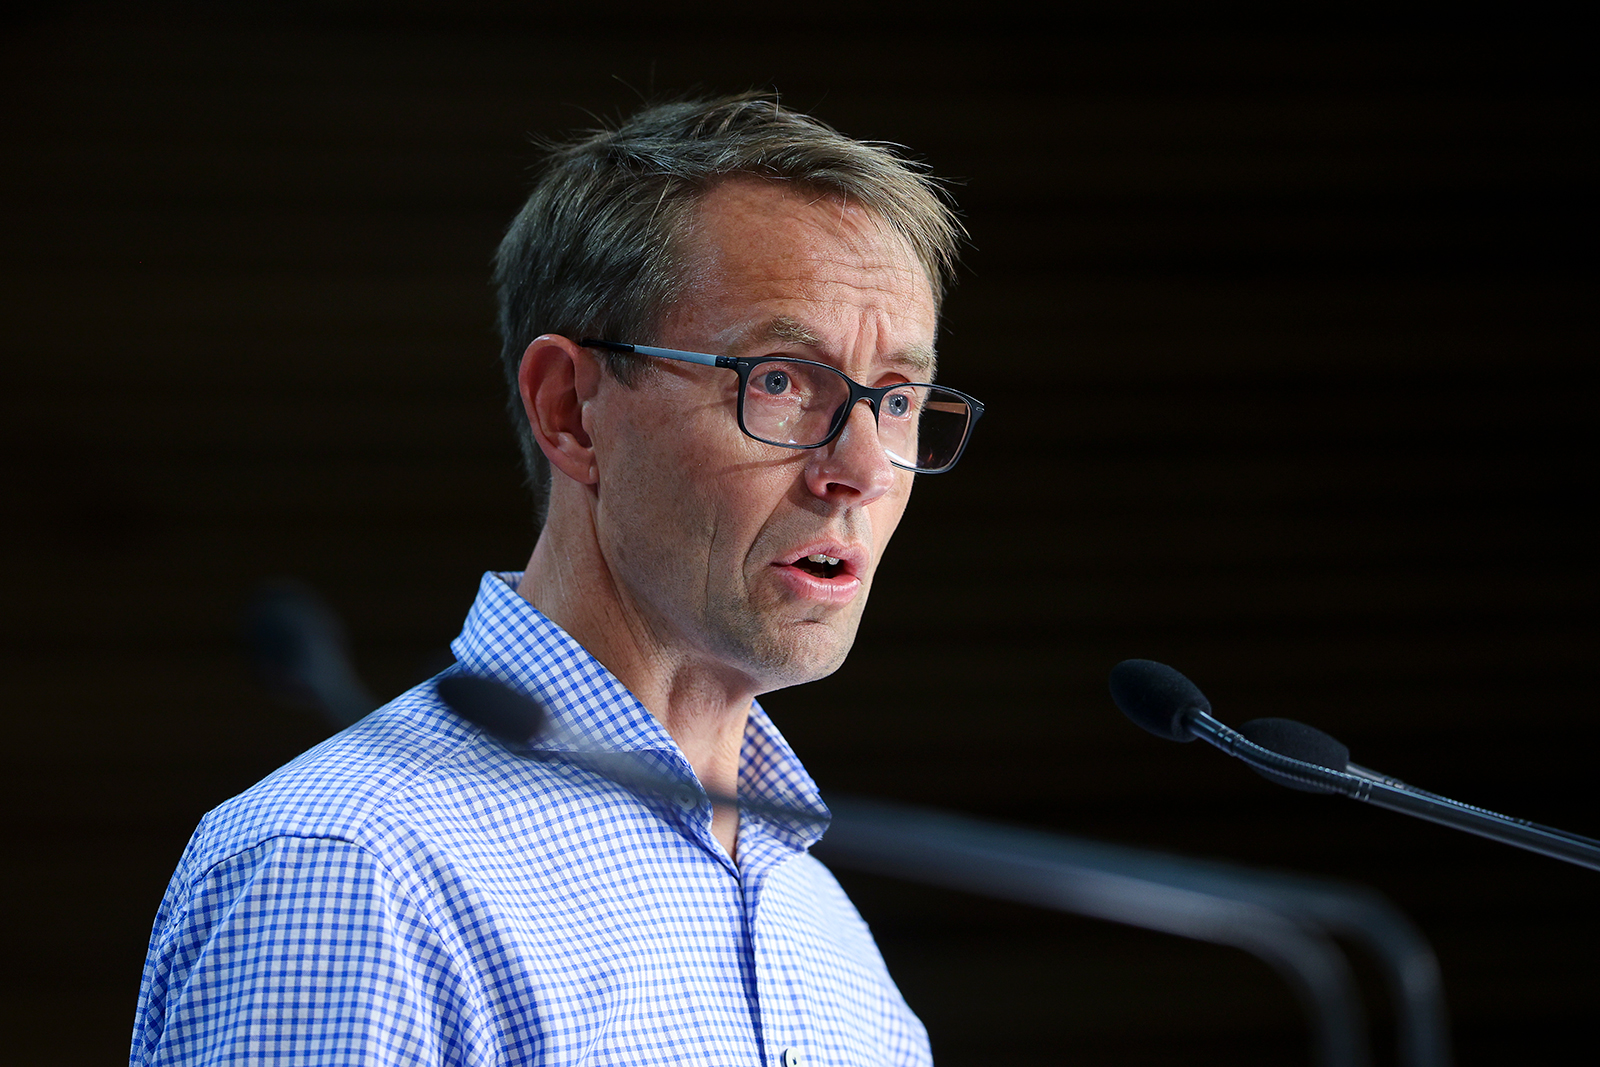 Director General of Health Dr. Ashley Bloomfield speaks to the media during a news conference at Parliament in Wellington, New Zealand, on January 24.